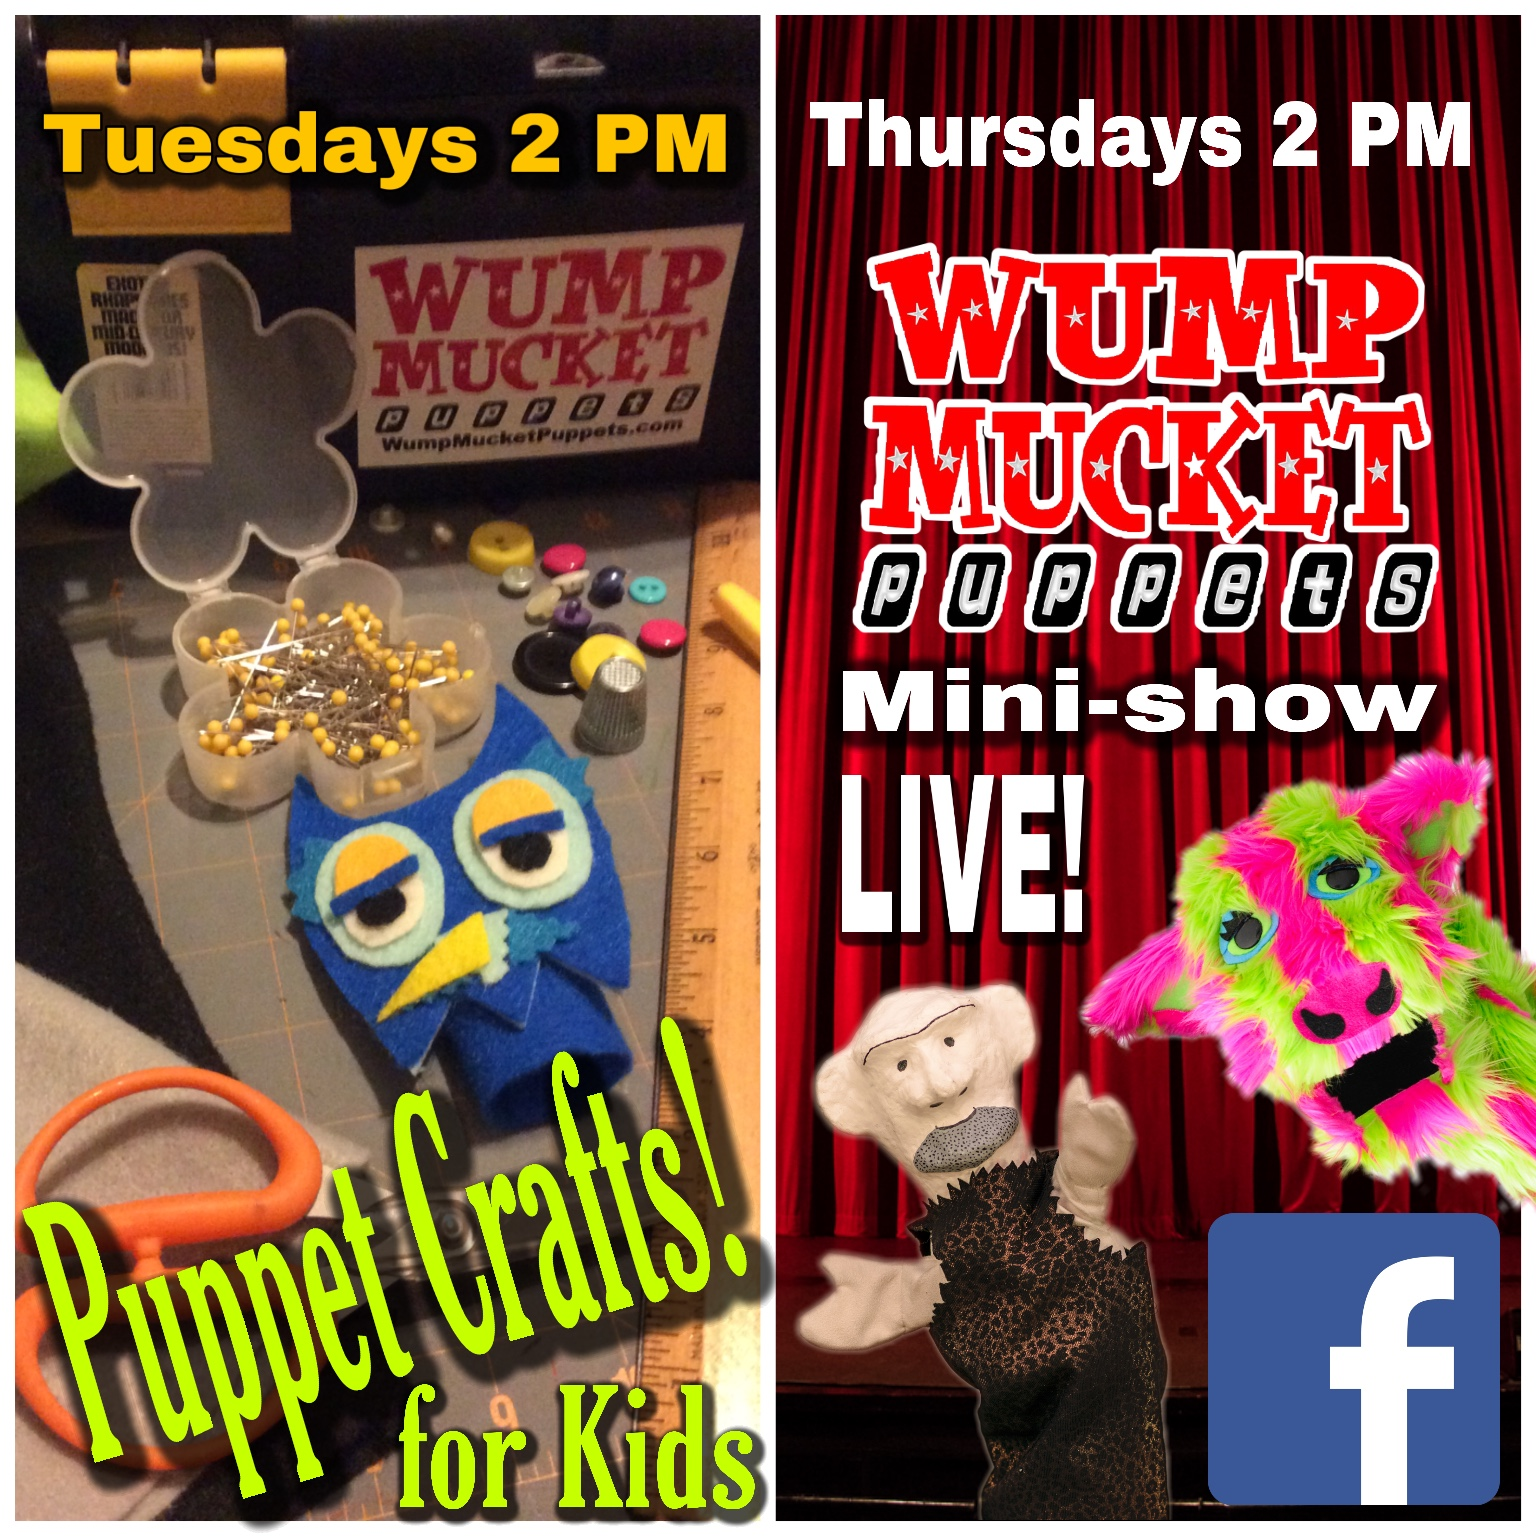 Puppet Crafts for Kids webcast